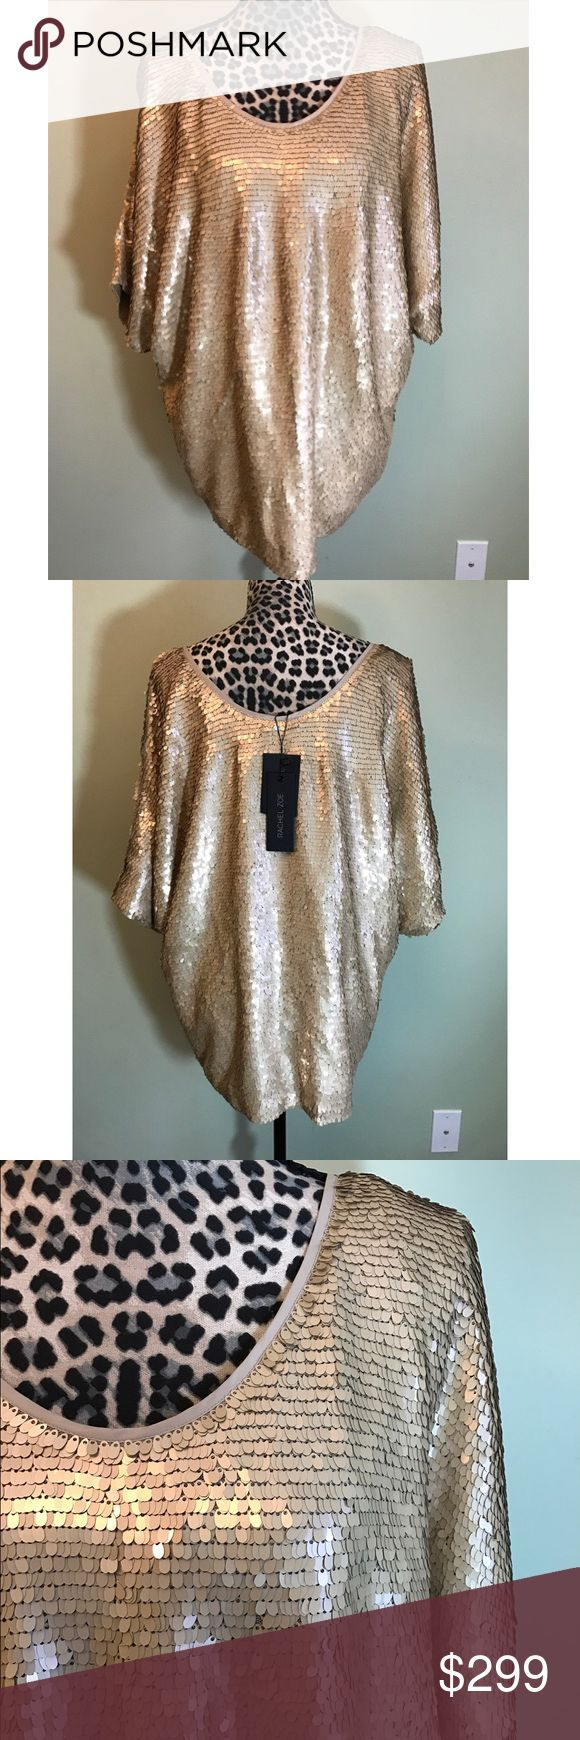 🆕💛Amazing gold sparkling top!! NWT $350 retail Gorgeous gold sparkling Rachel Zoe top. New with tag. Has some weight to it due to all the sequins. $350 retail. Rachel Zoe Tops